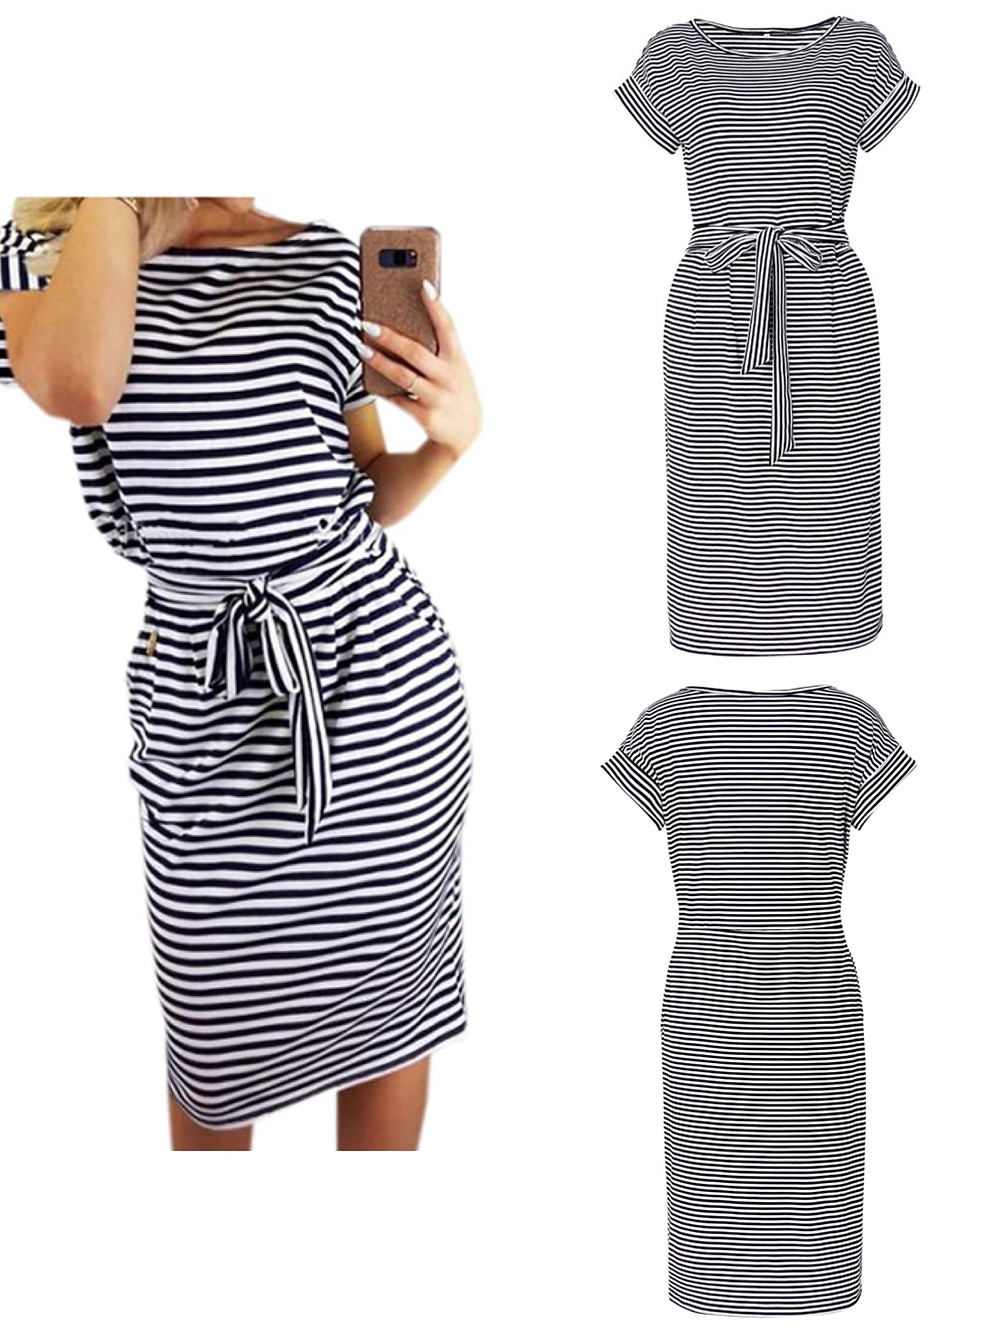 Palinda stripe printed, short sleeve, scoop neck side seam pockets, knee length pencil dress. Can be worn for work or play.